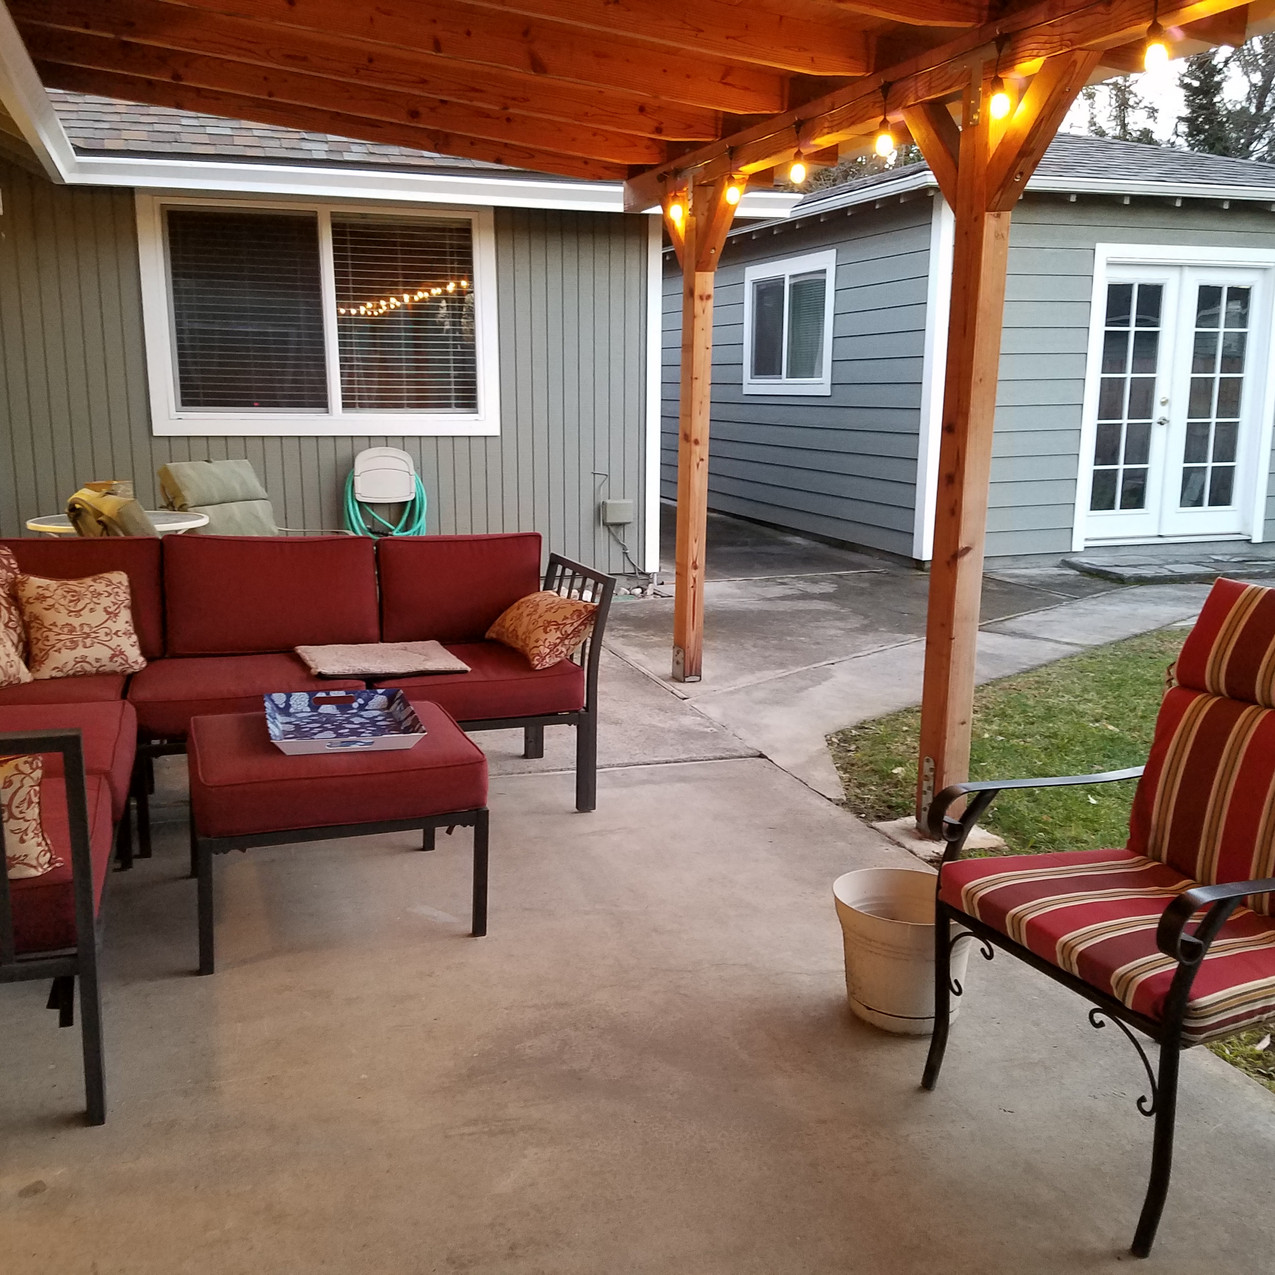 We love the outdoor living room too.